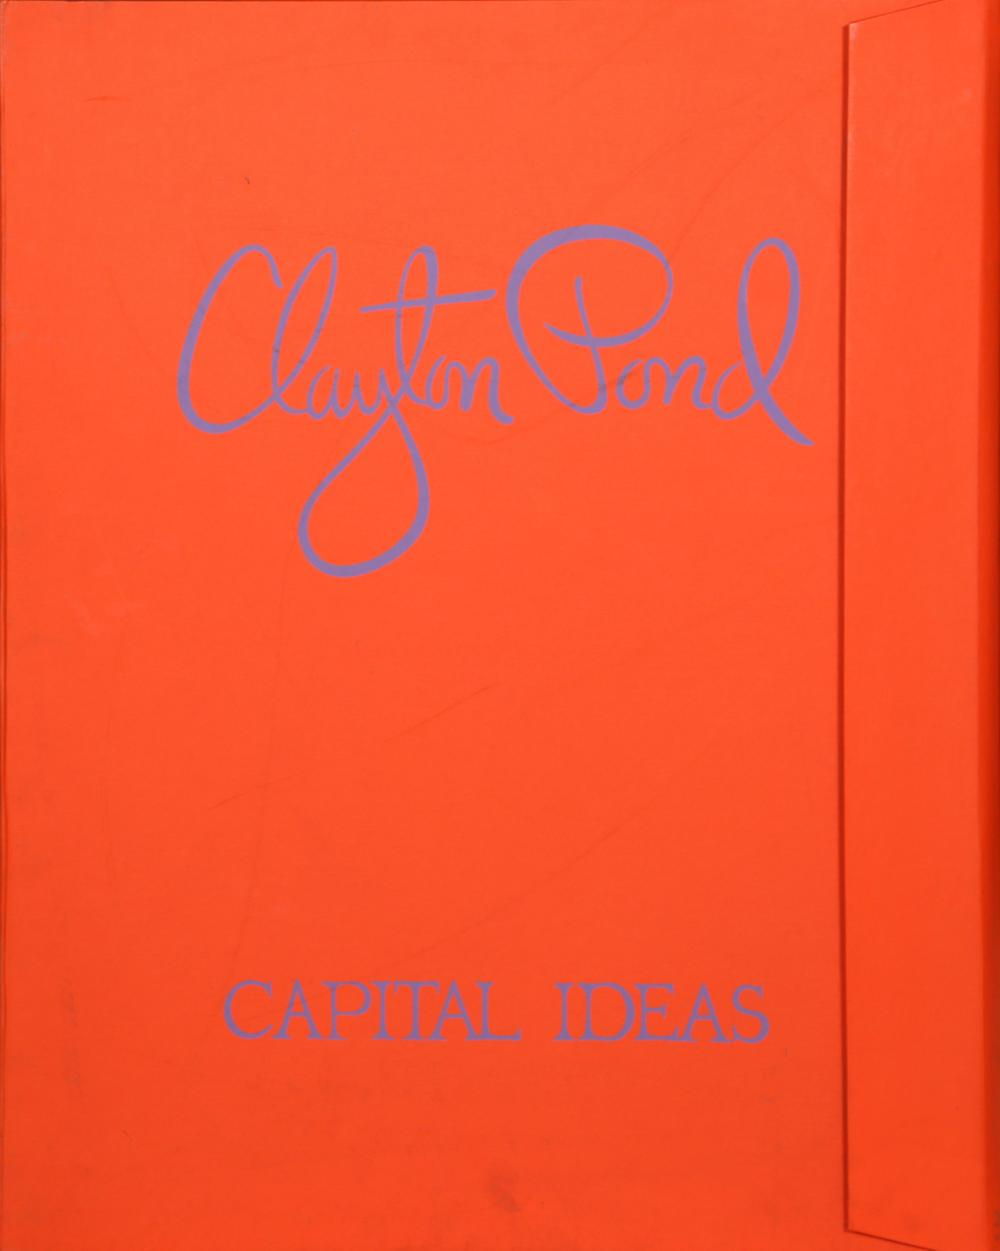 Clayton Pond, Capital Ideas Portfolio, Seven Serigraphs in Folio